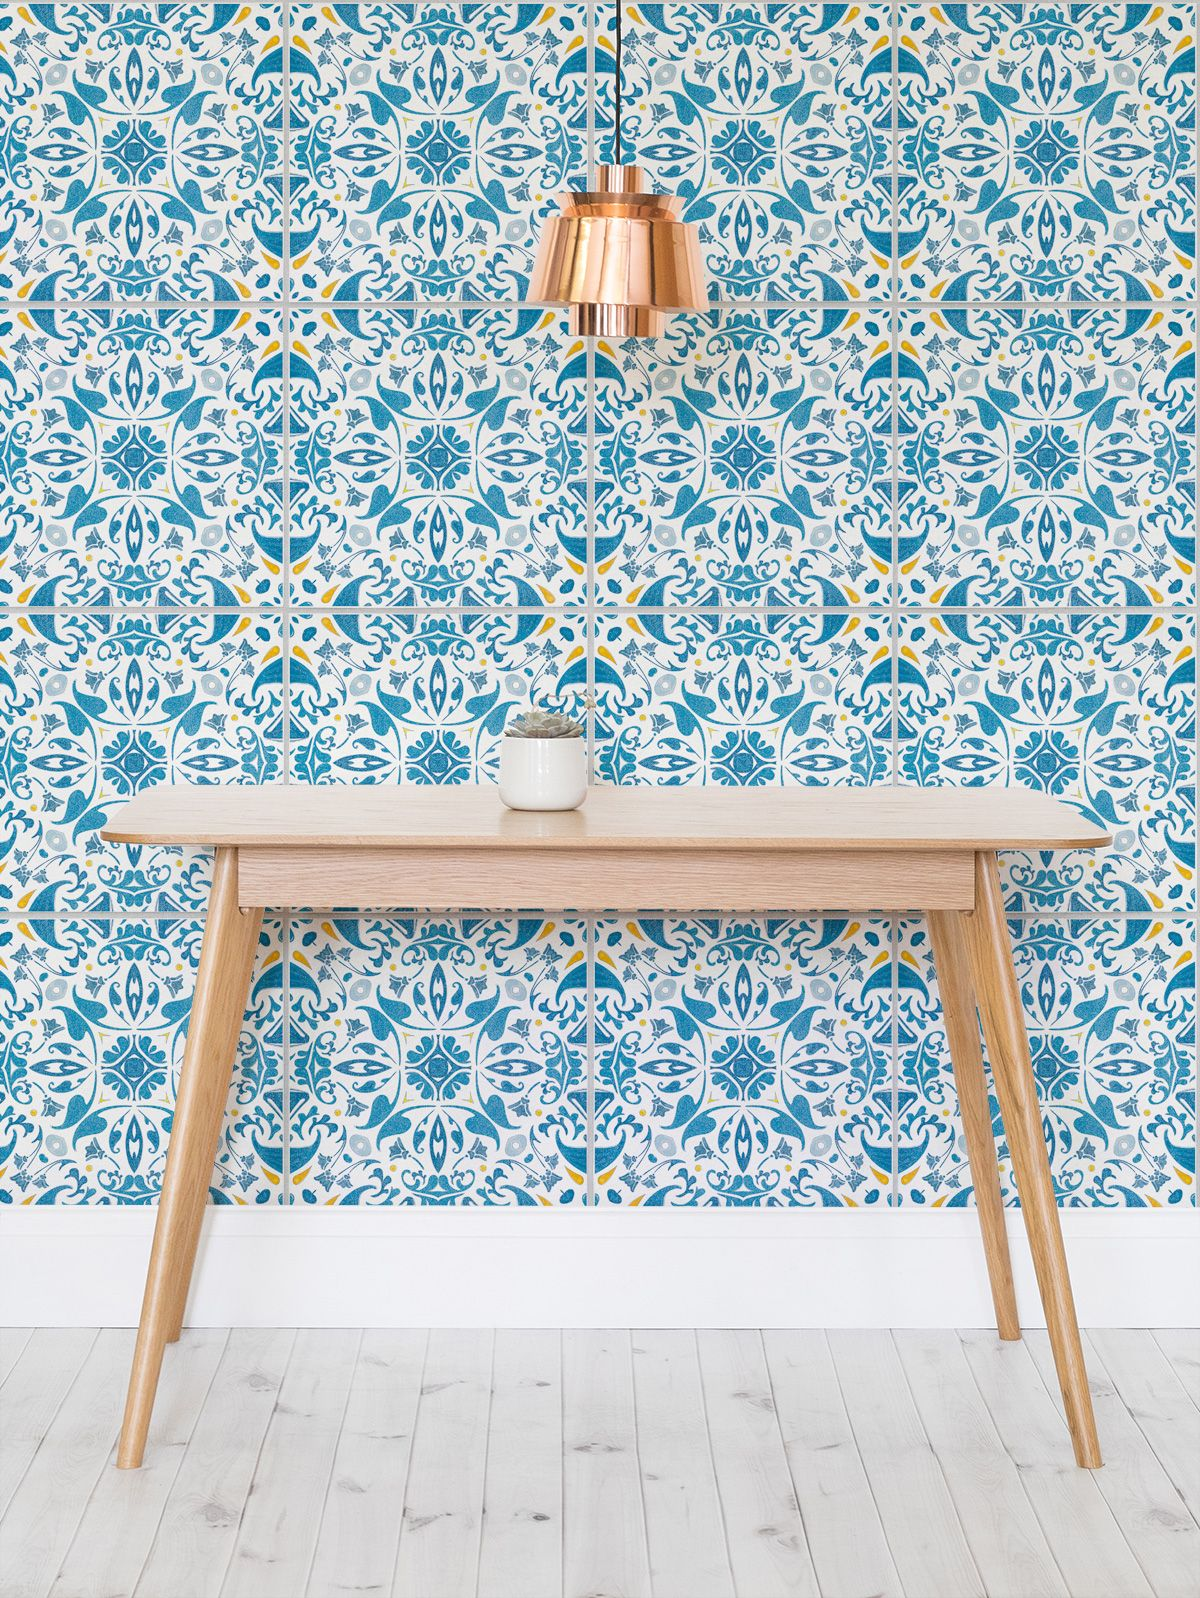 Wallpaper For Kitchen Blue And Orange Portuguese Tiles Wallpaper Home Summer And